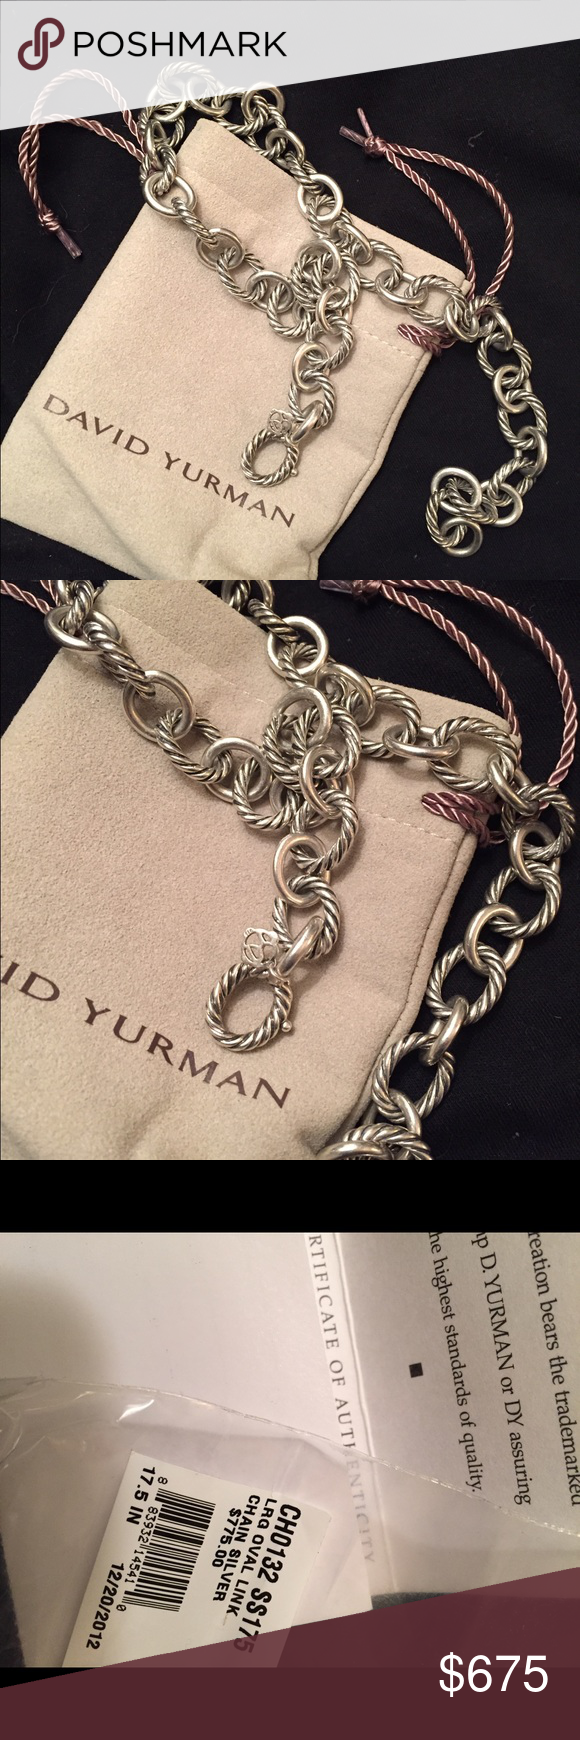 Gorgeous authentic David Yurman necklace❤️ Stunning, super classic David Yurman necklace David Yurman Jewelry Necklaces